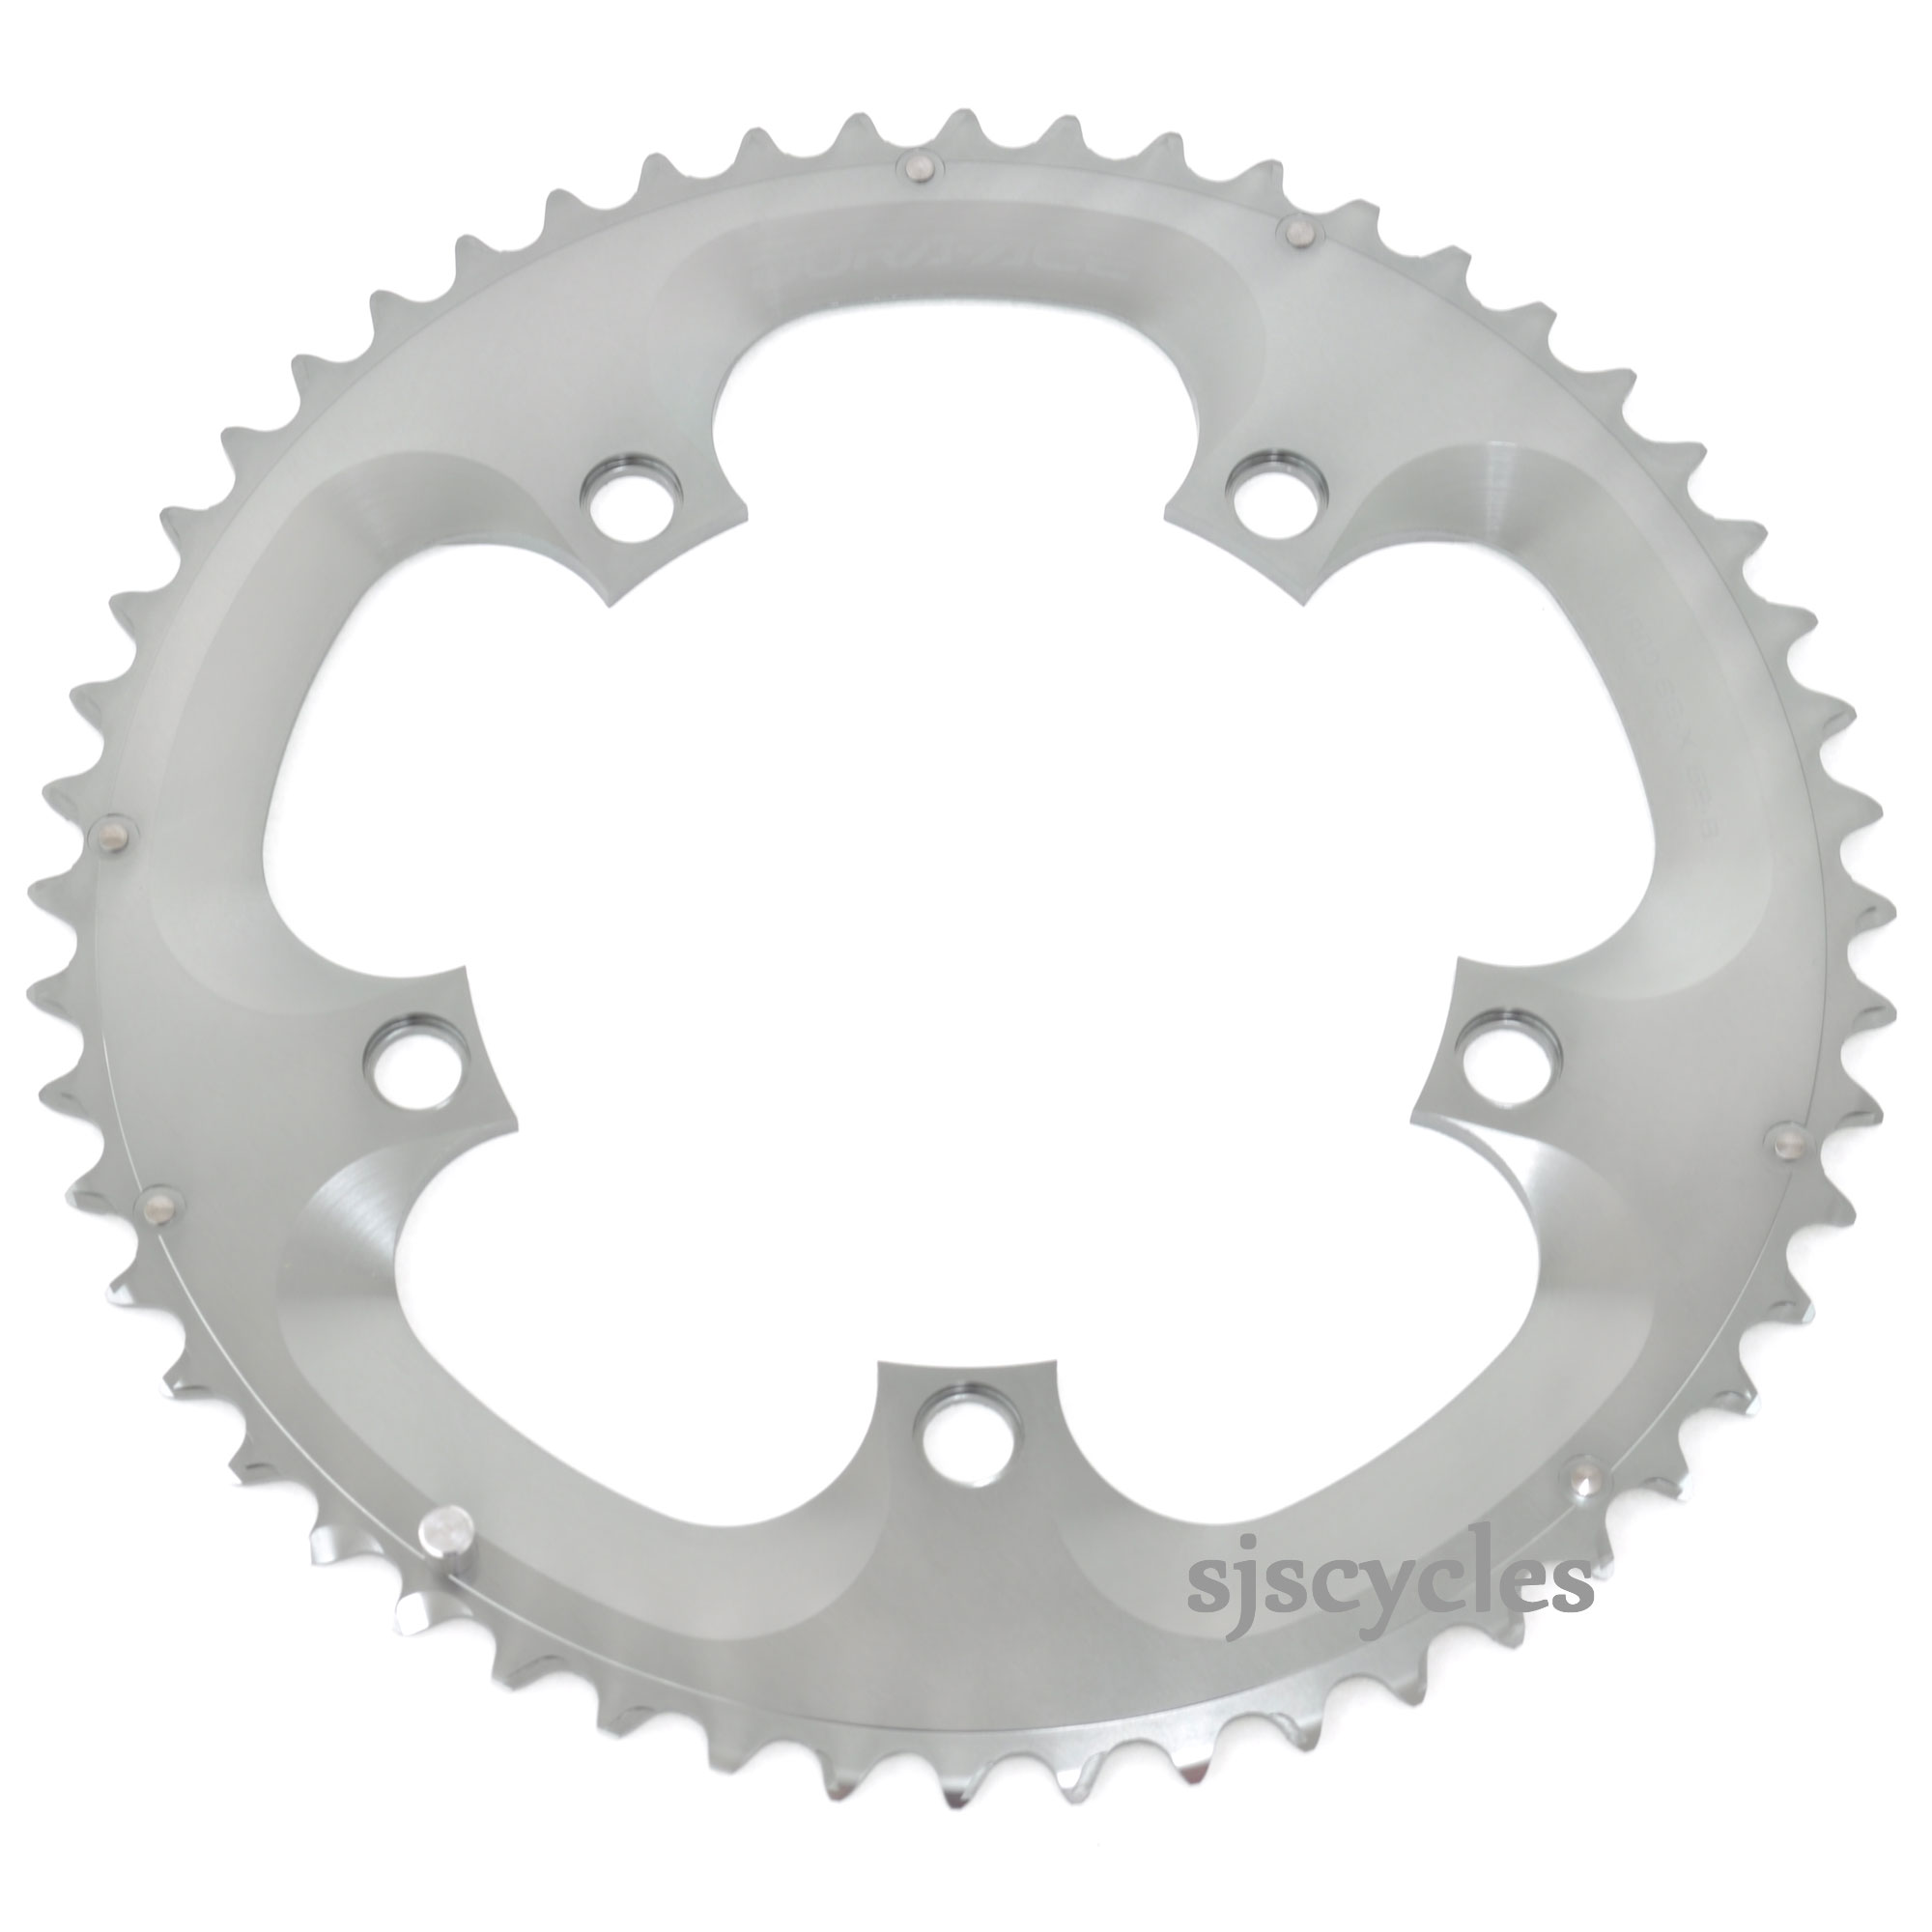 SHIMANO DURA-ACE 7800 39T X 130MM 10-SPEED B-TYPE SILVER BICYCLE CHAINRING